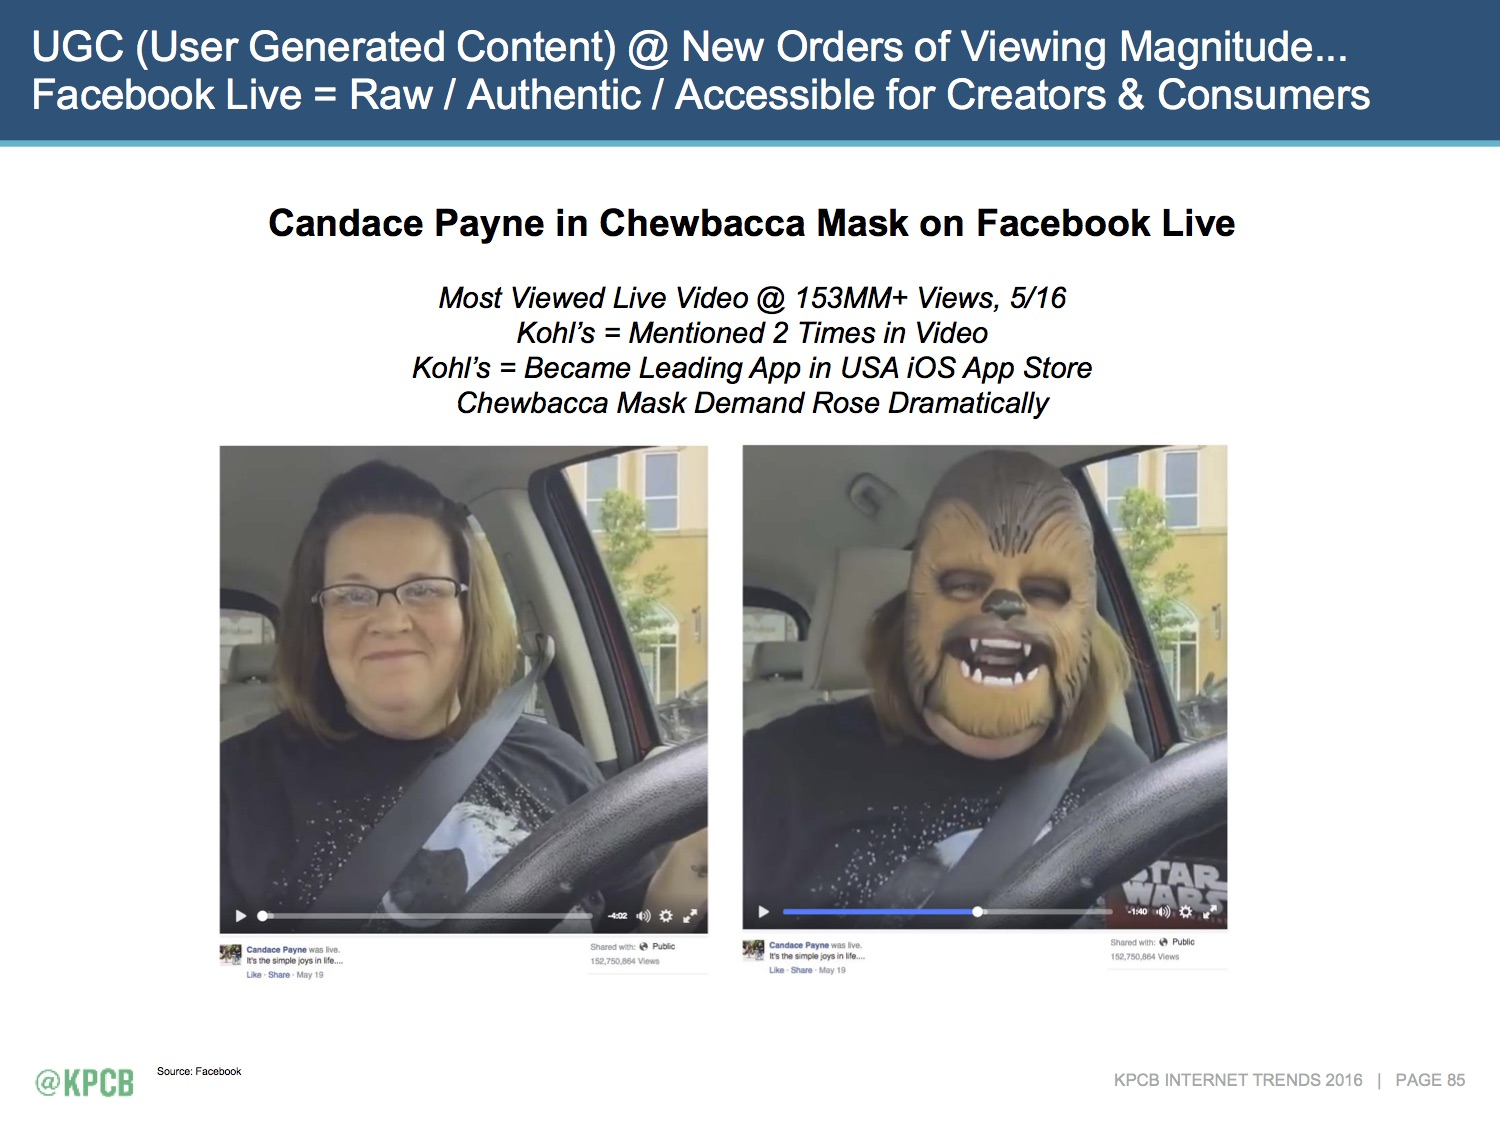 chewbacca_mask_lady_video.jpg